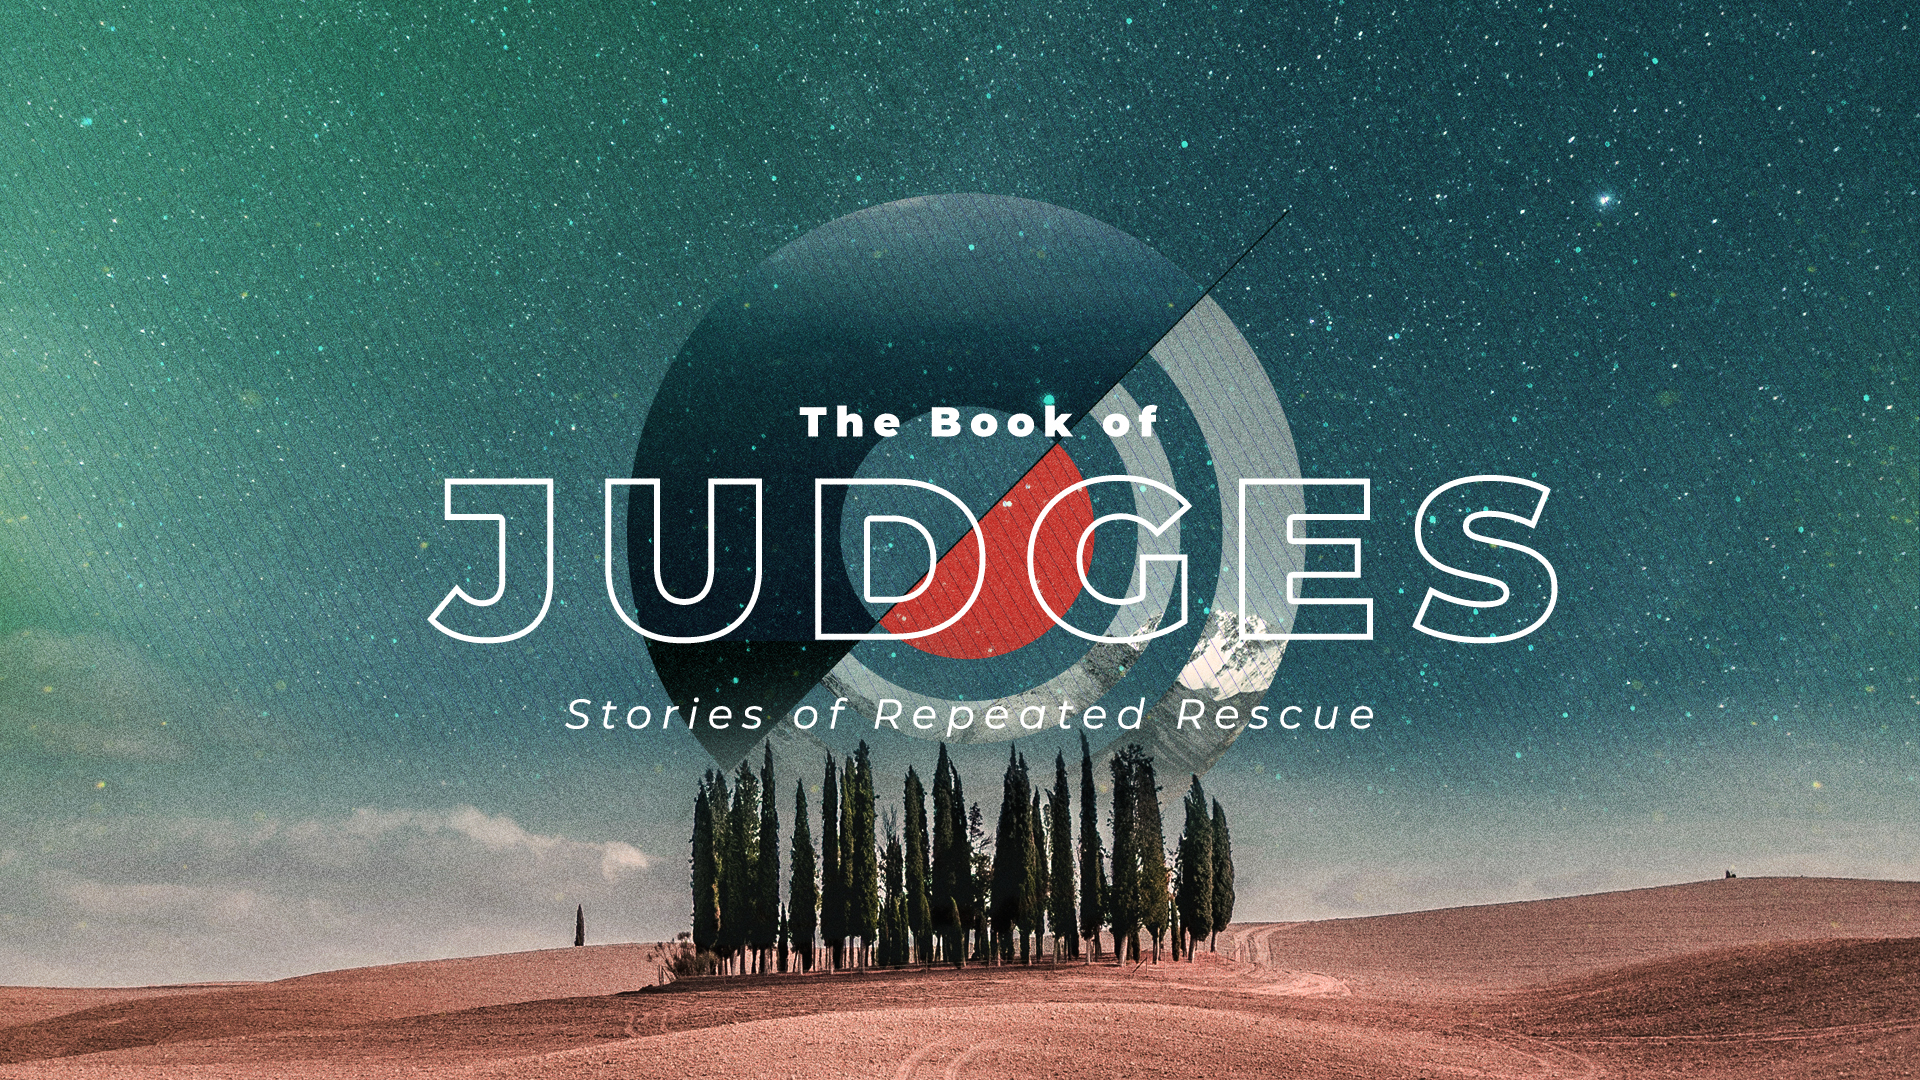 JUDGES: Stories of Repeated Rescue